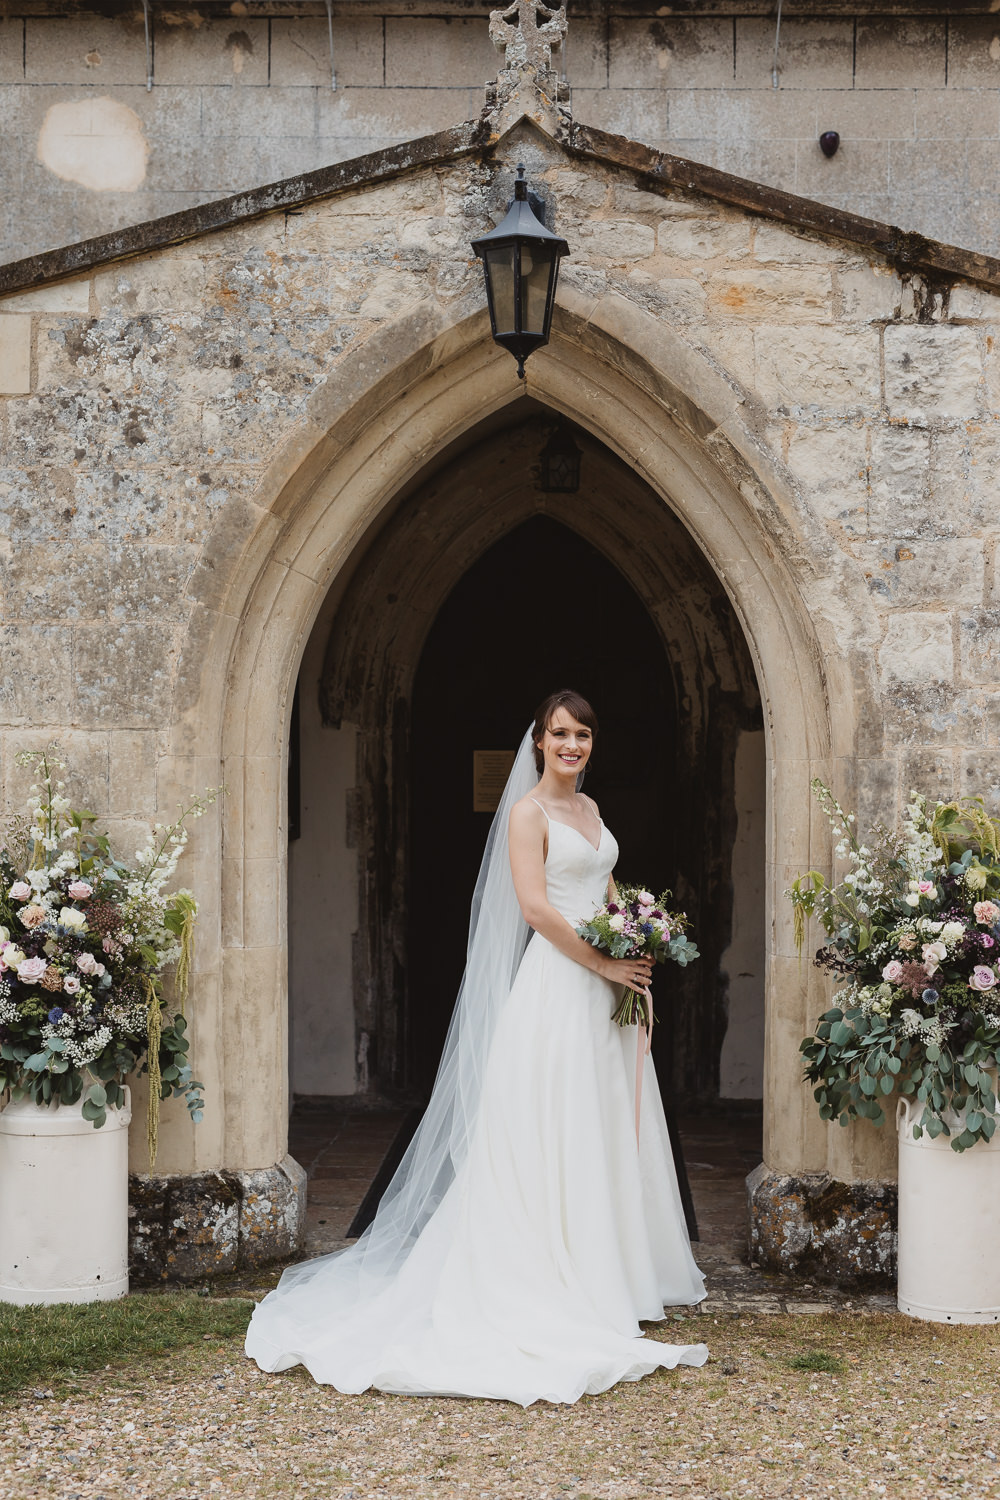 Dress Gown Bride Bridal Straps V Train Clear Marquee Wedding Sarah Brookes Photography